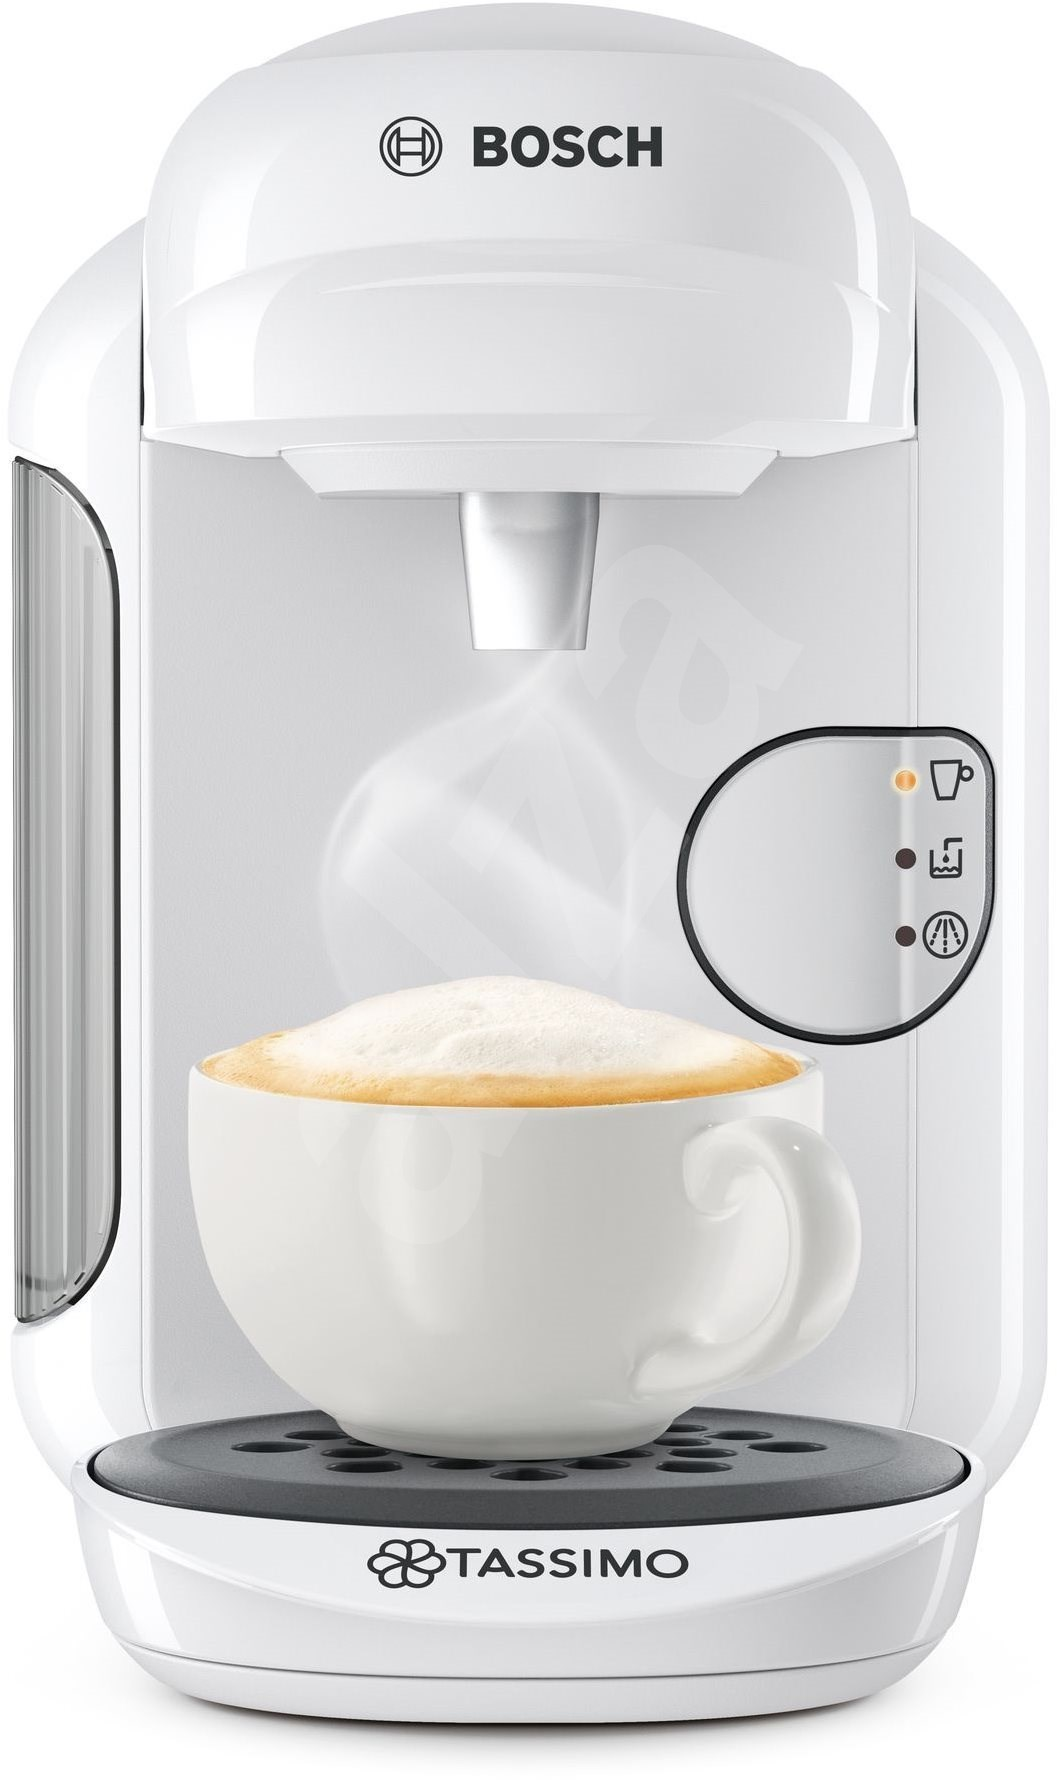 bosch tassimo tas1404 kapsel kaffeemaschine. Black Bedroom Furniture Sets. Home Design Ideas